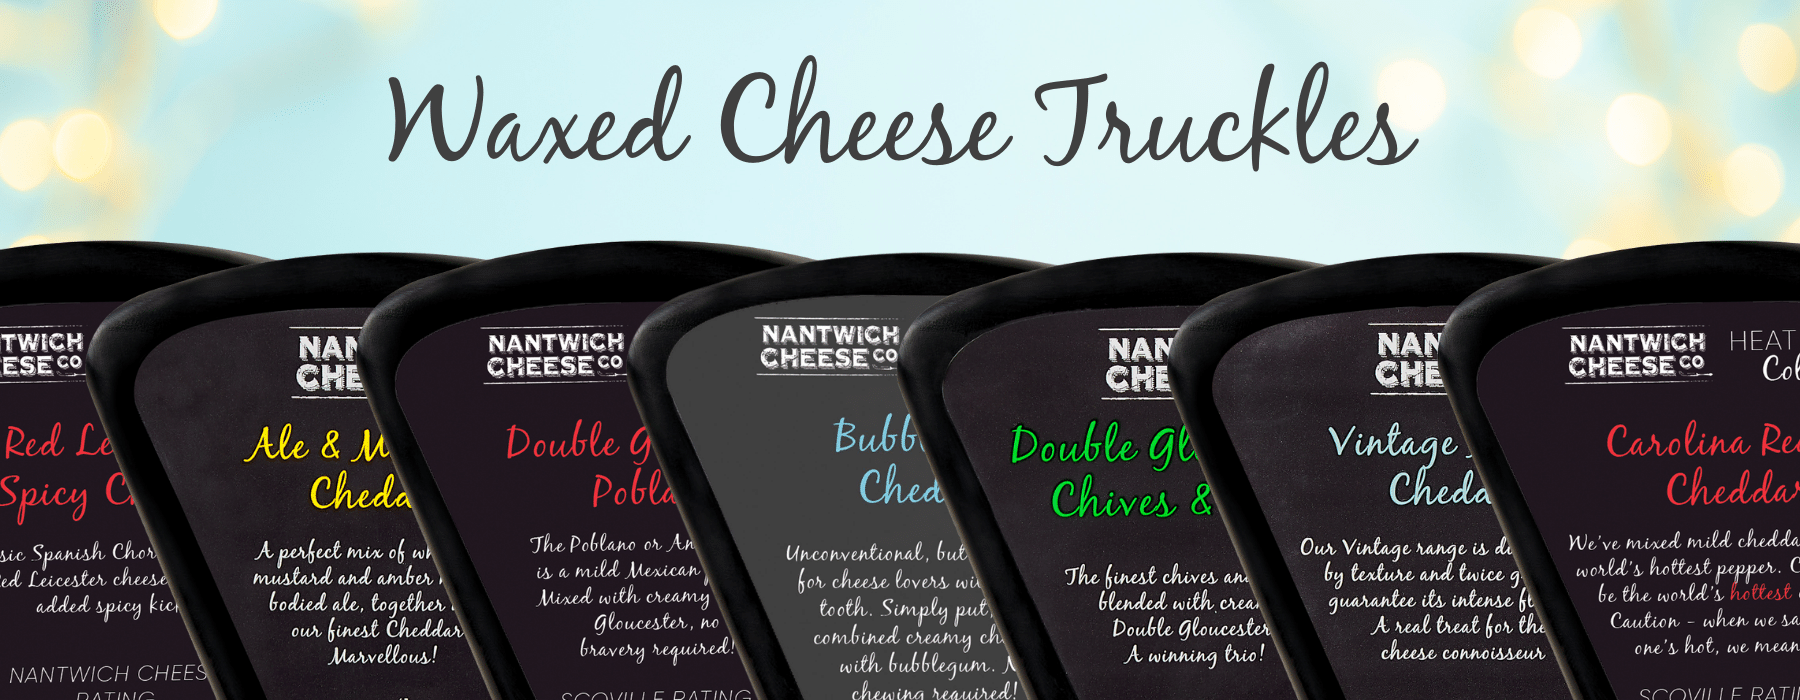 waxed cheese truckles wholesale retail